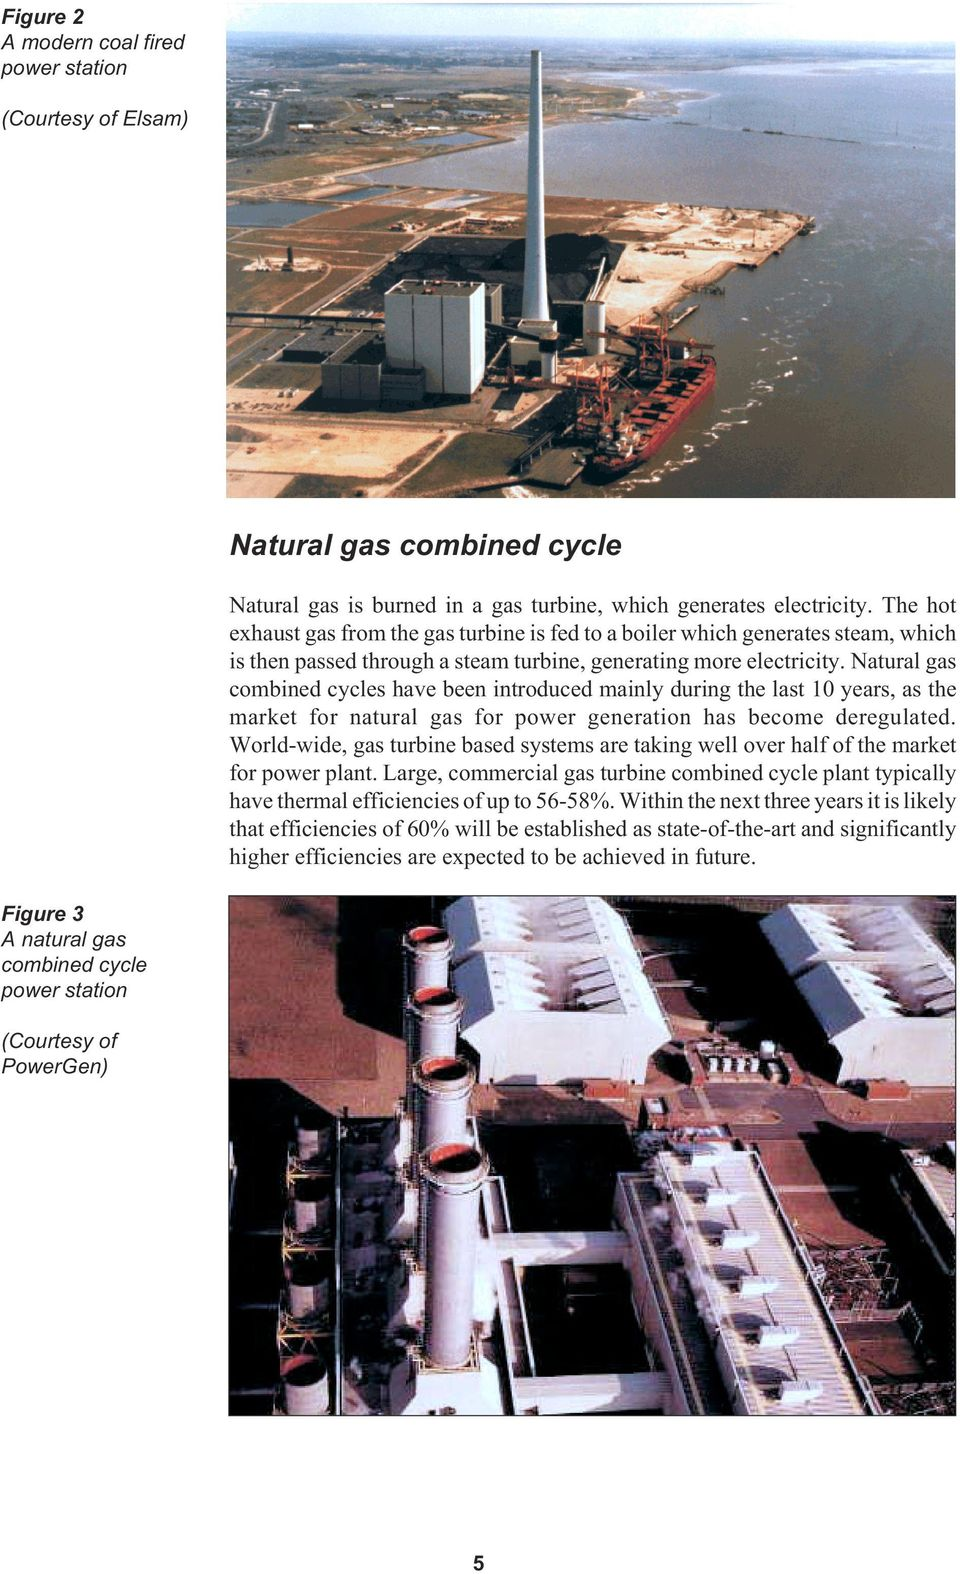 Natural gas combined cycles have been introduced mainly during the last 10 years, as the market for natural gas for power generation has become deregulated.